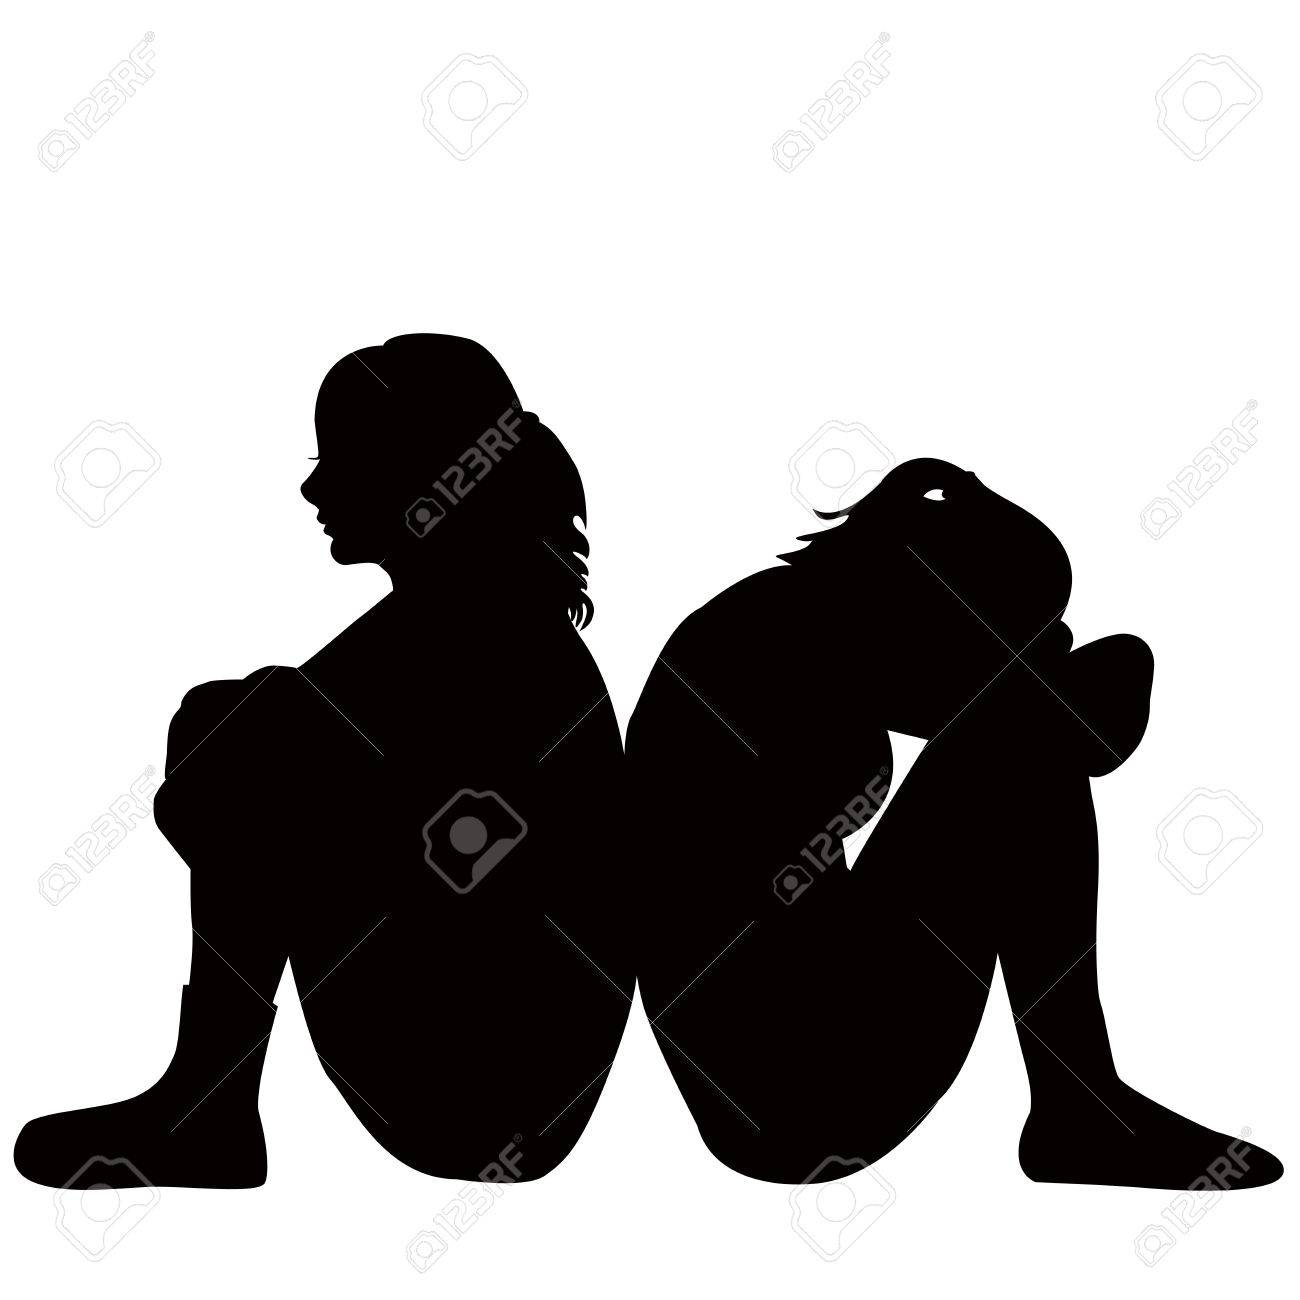 Silhouettes of two young women sitting on the floor - 63299055